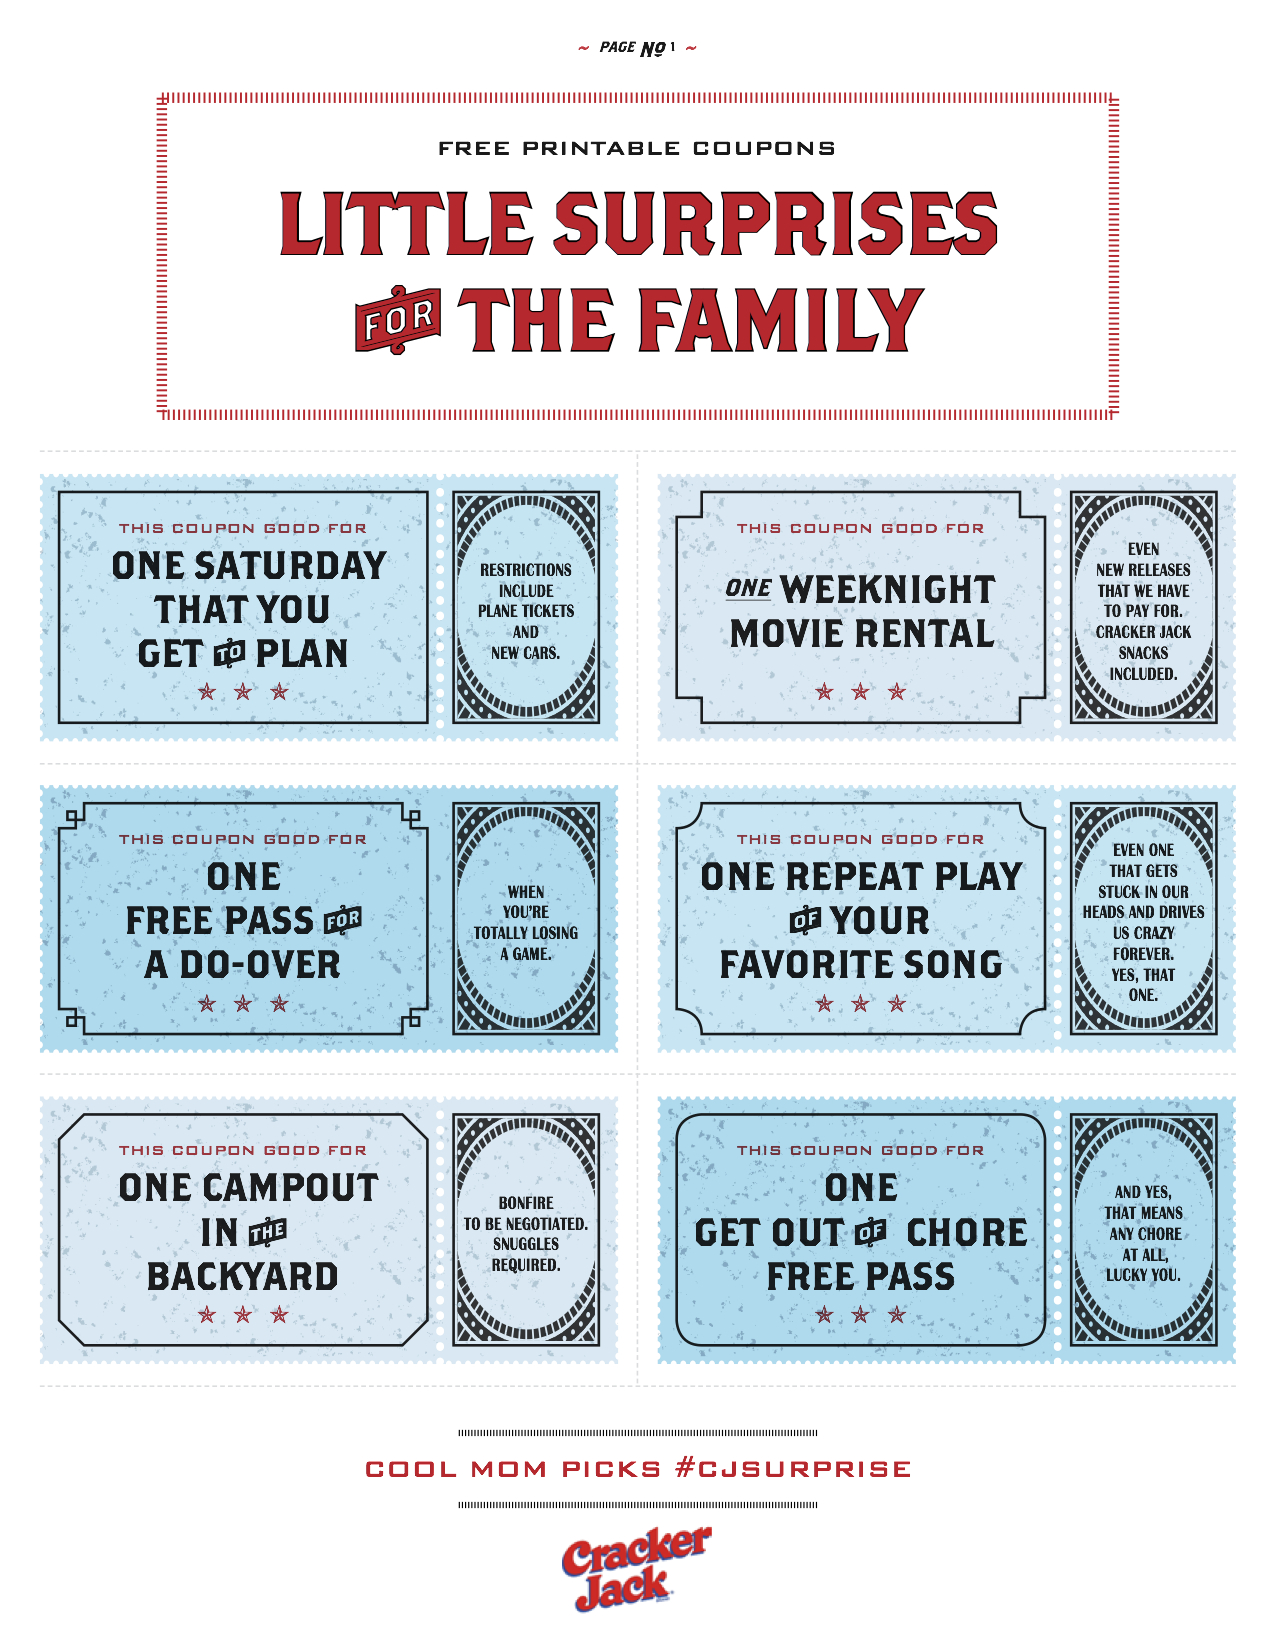 Free Printable Coupons That Make Awesome Family Gifts - Free Printable Coupons Without Downloads